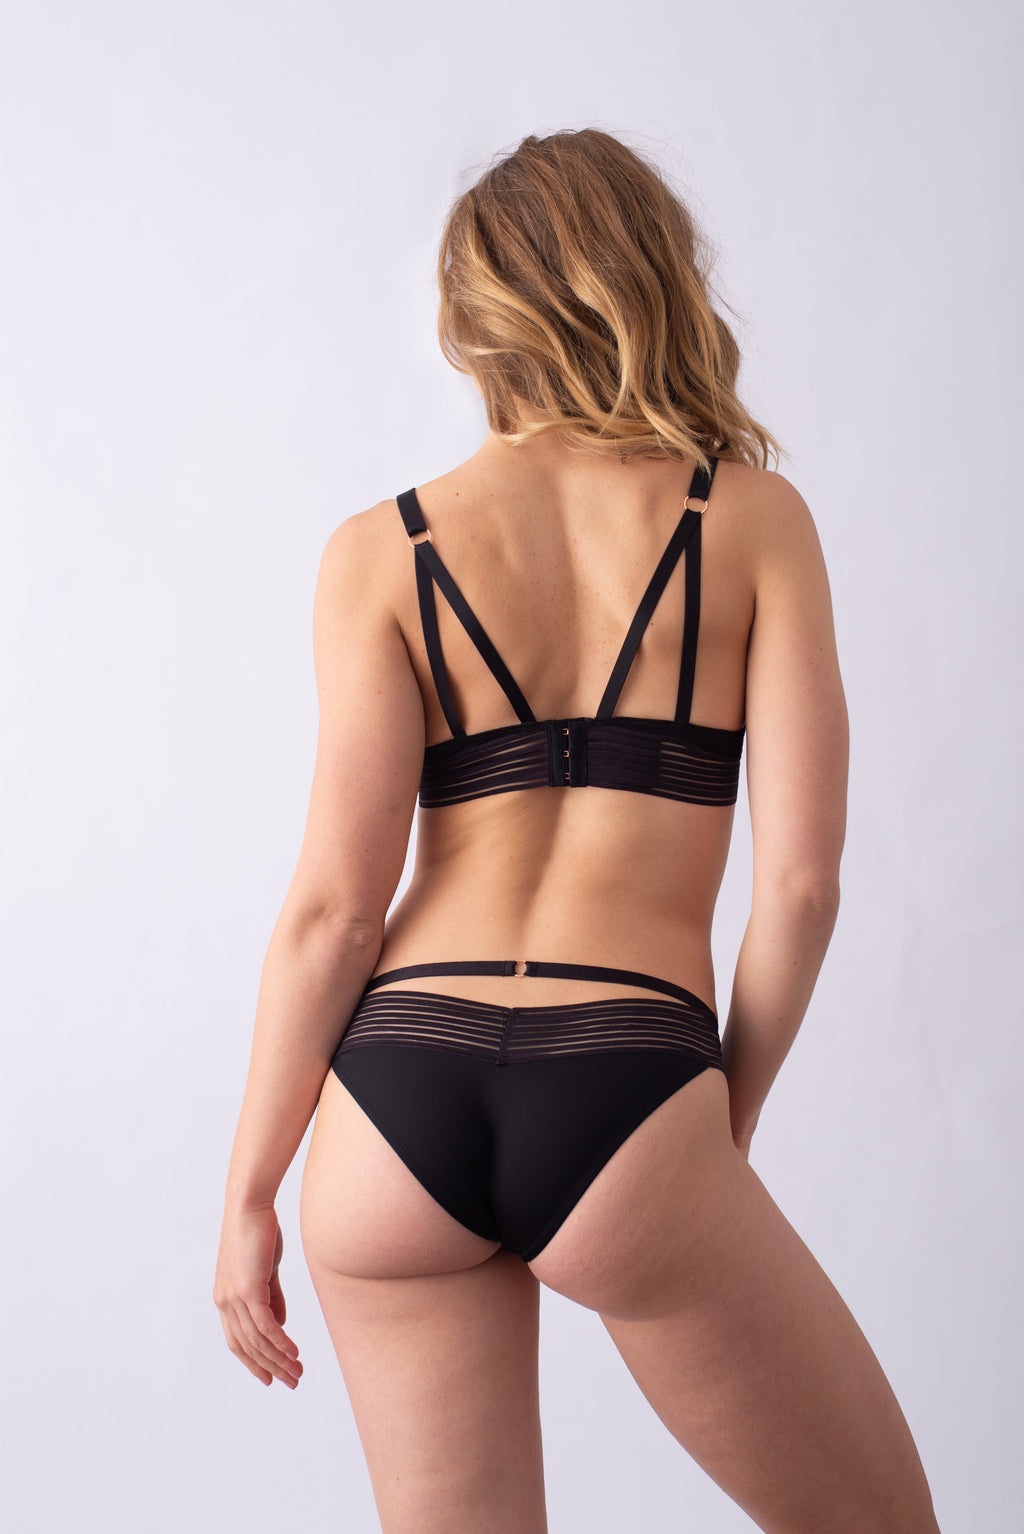 PROJECTME AMBITION BLACK BRAZILLIAN BRIEF